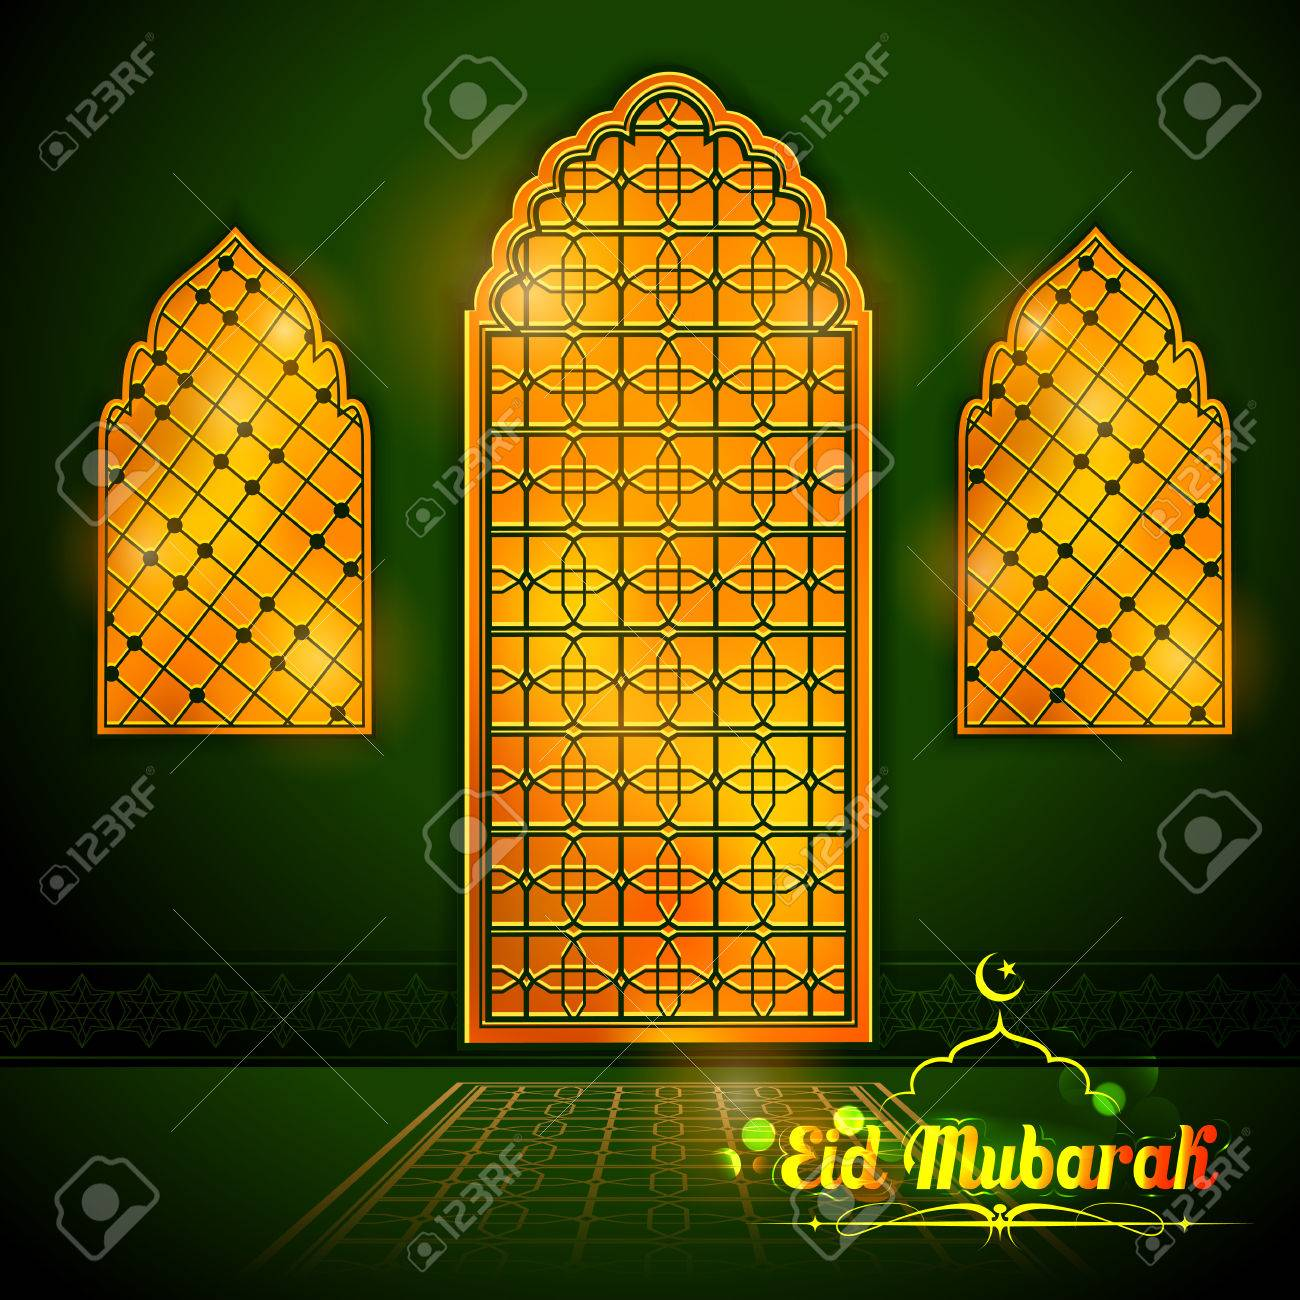 Eid Mubarak Happy Eid Greetings With Arabic Decorated Golden